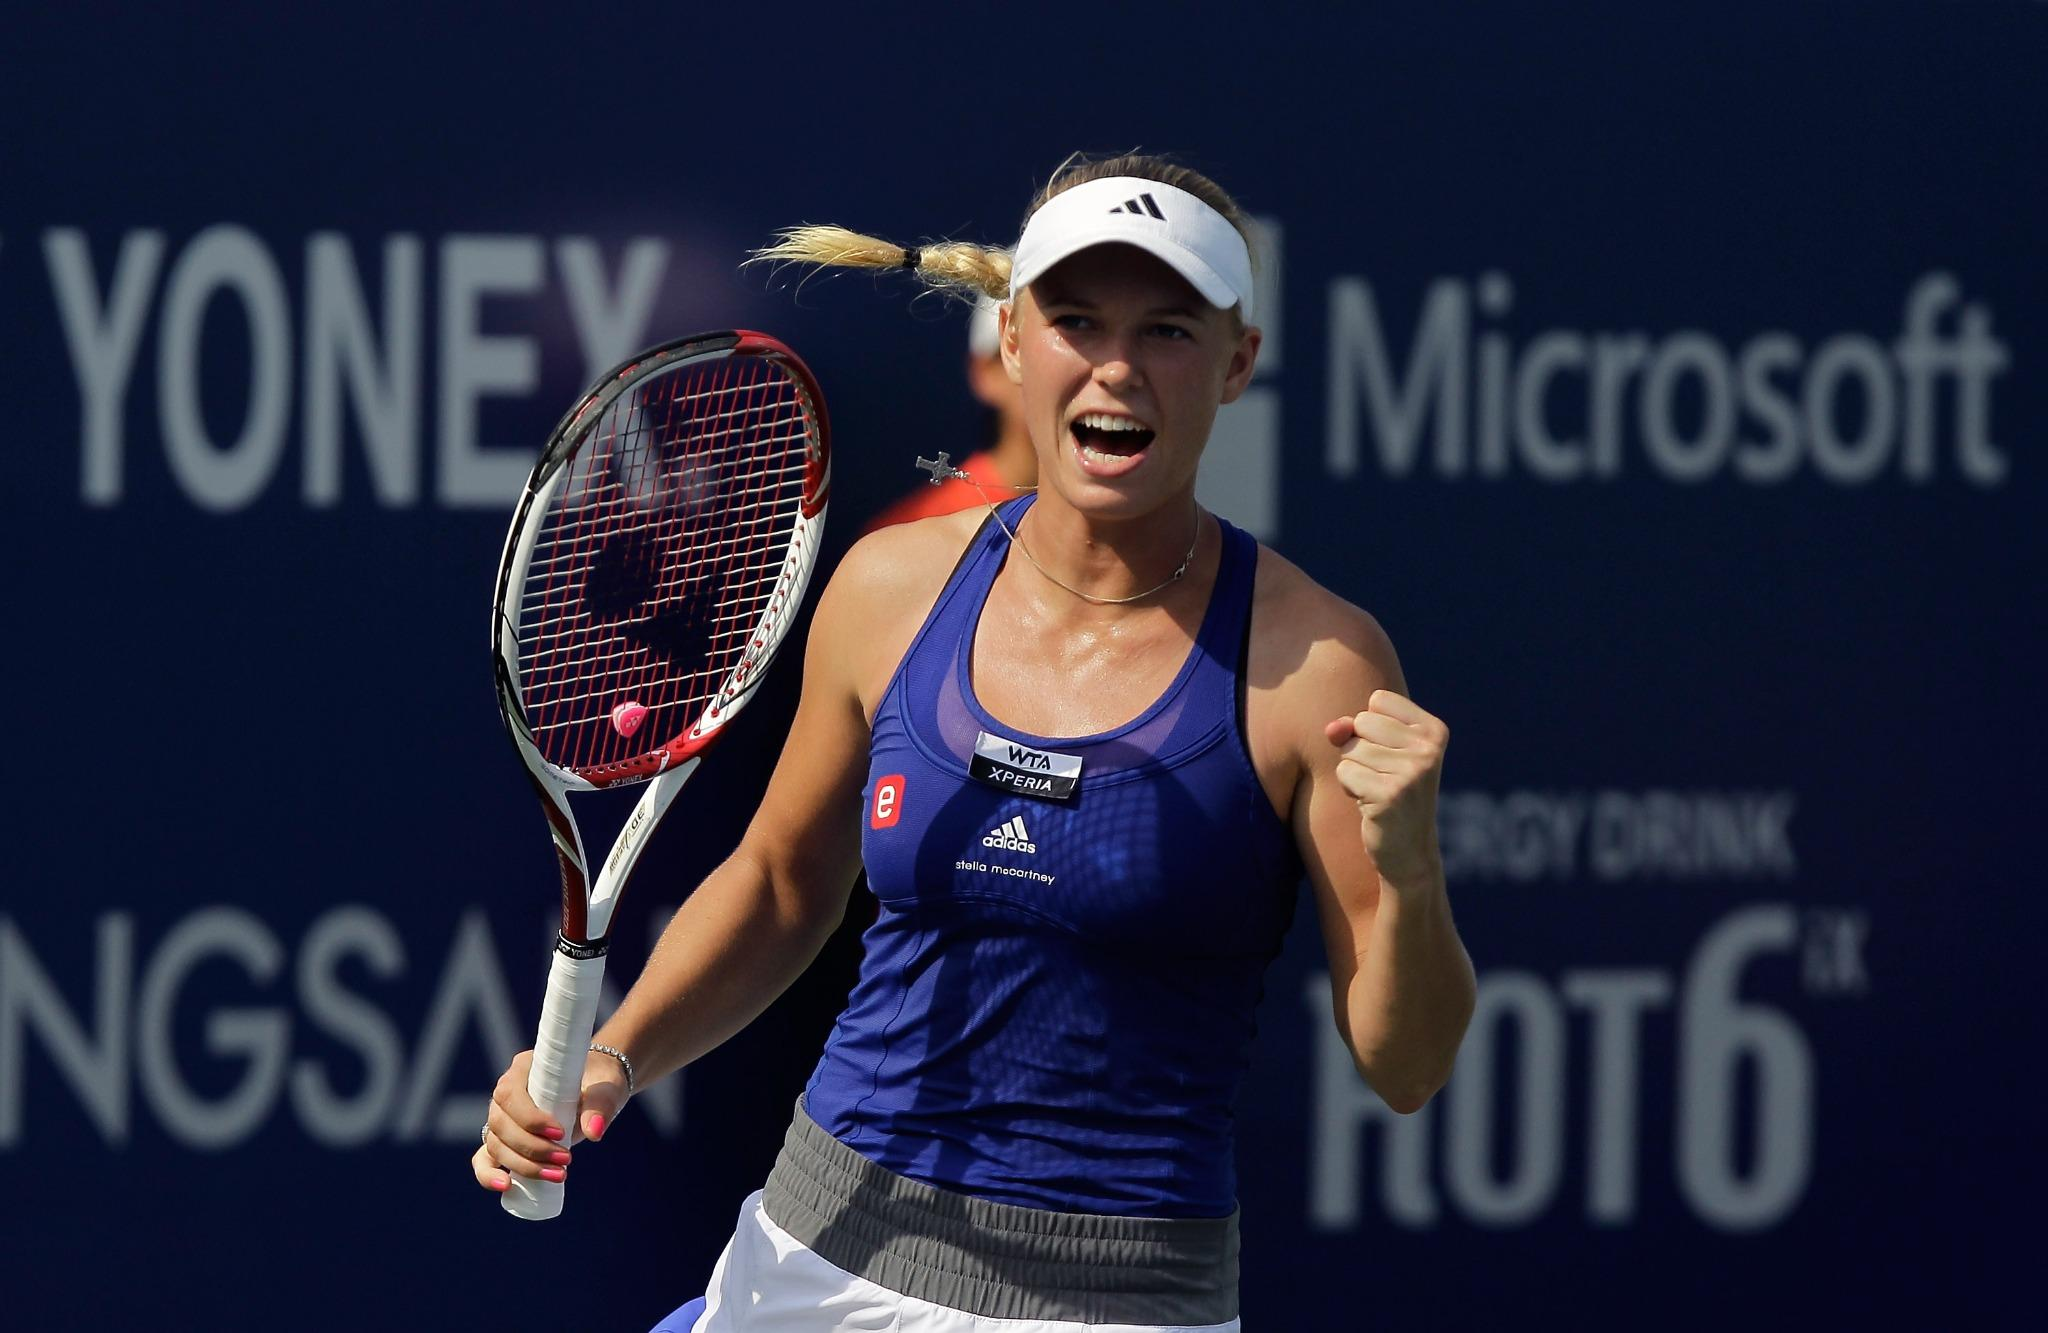 Wozniacki Wins 2012 Korea Open, Ends Title Drought